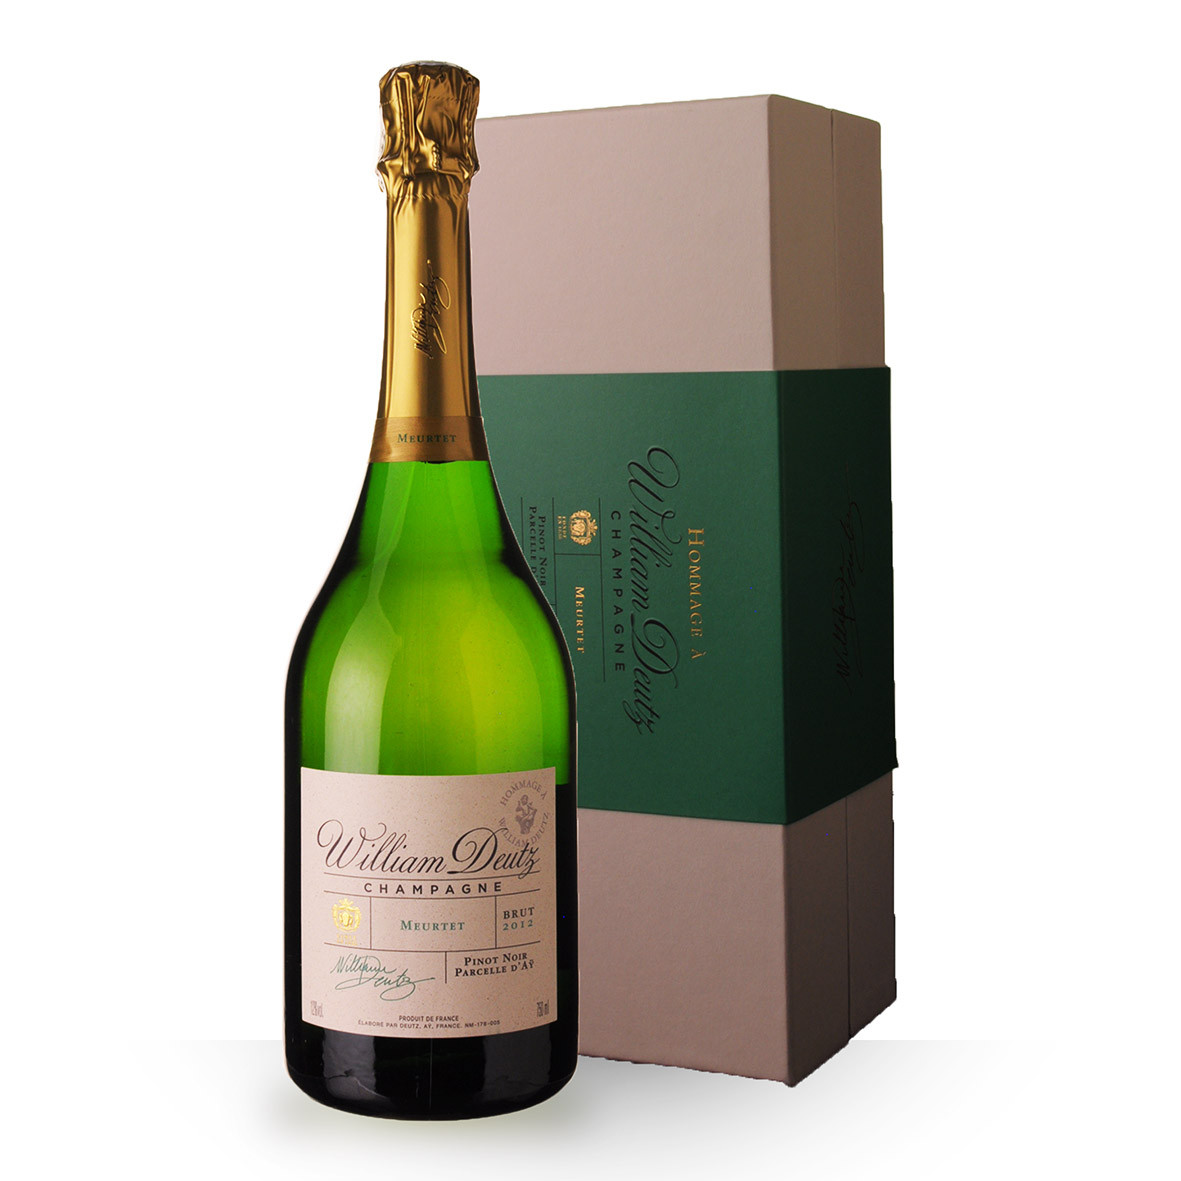 Champagne Deutz Hommage William Deutz Meurtet 2012 Brut 75cl Coffret www.odyssee-vins.com